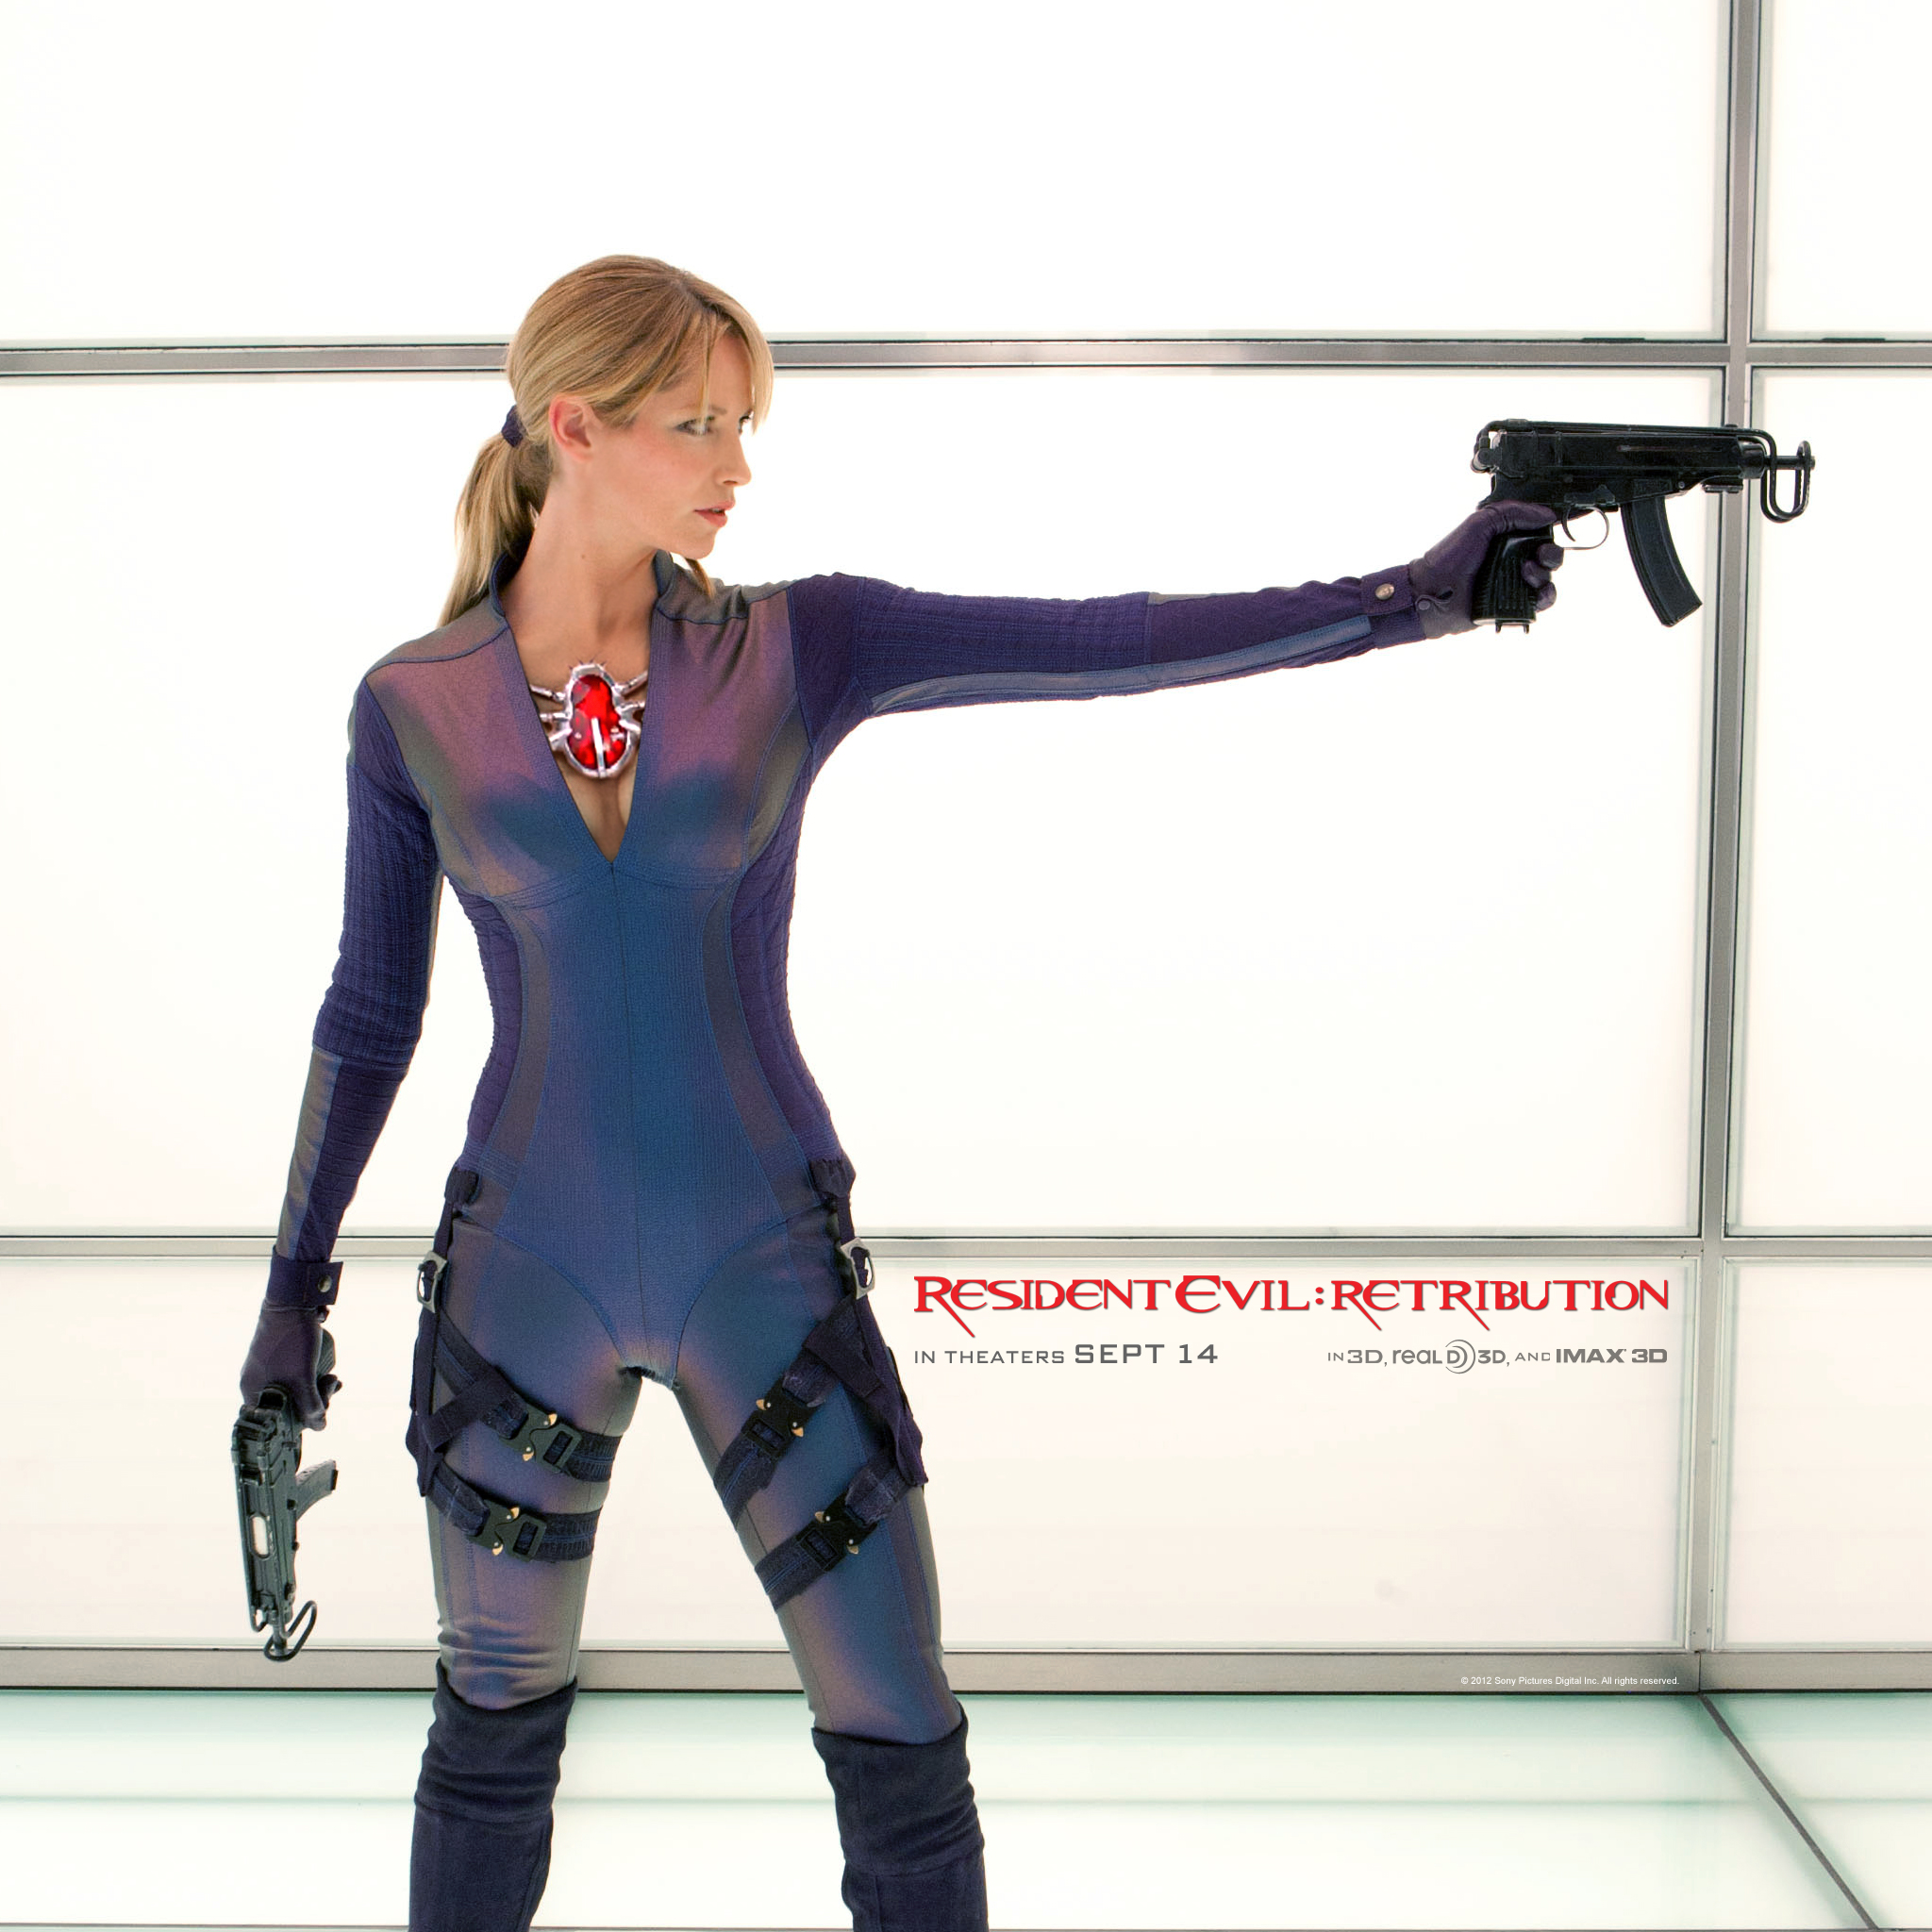 New Resident Evil Retribution Character Banners Reintroduce The